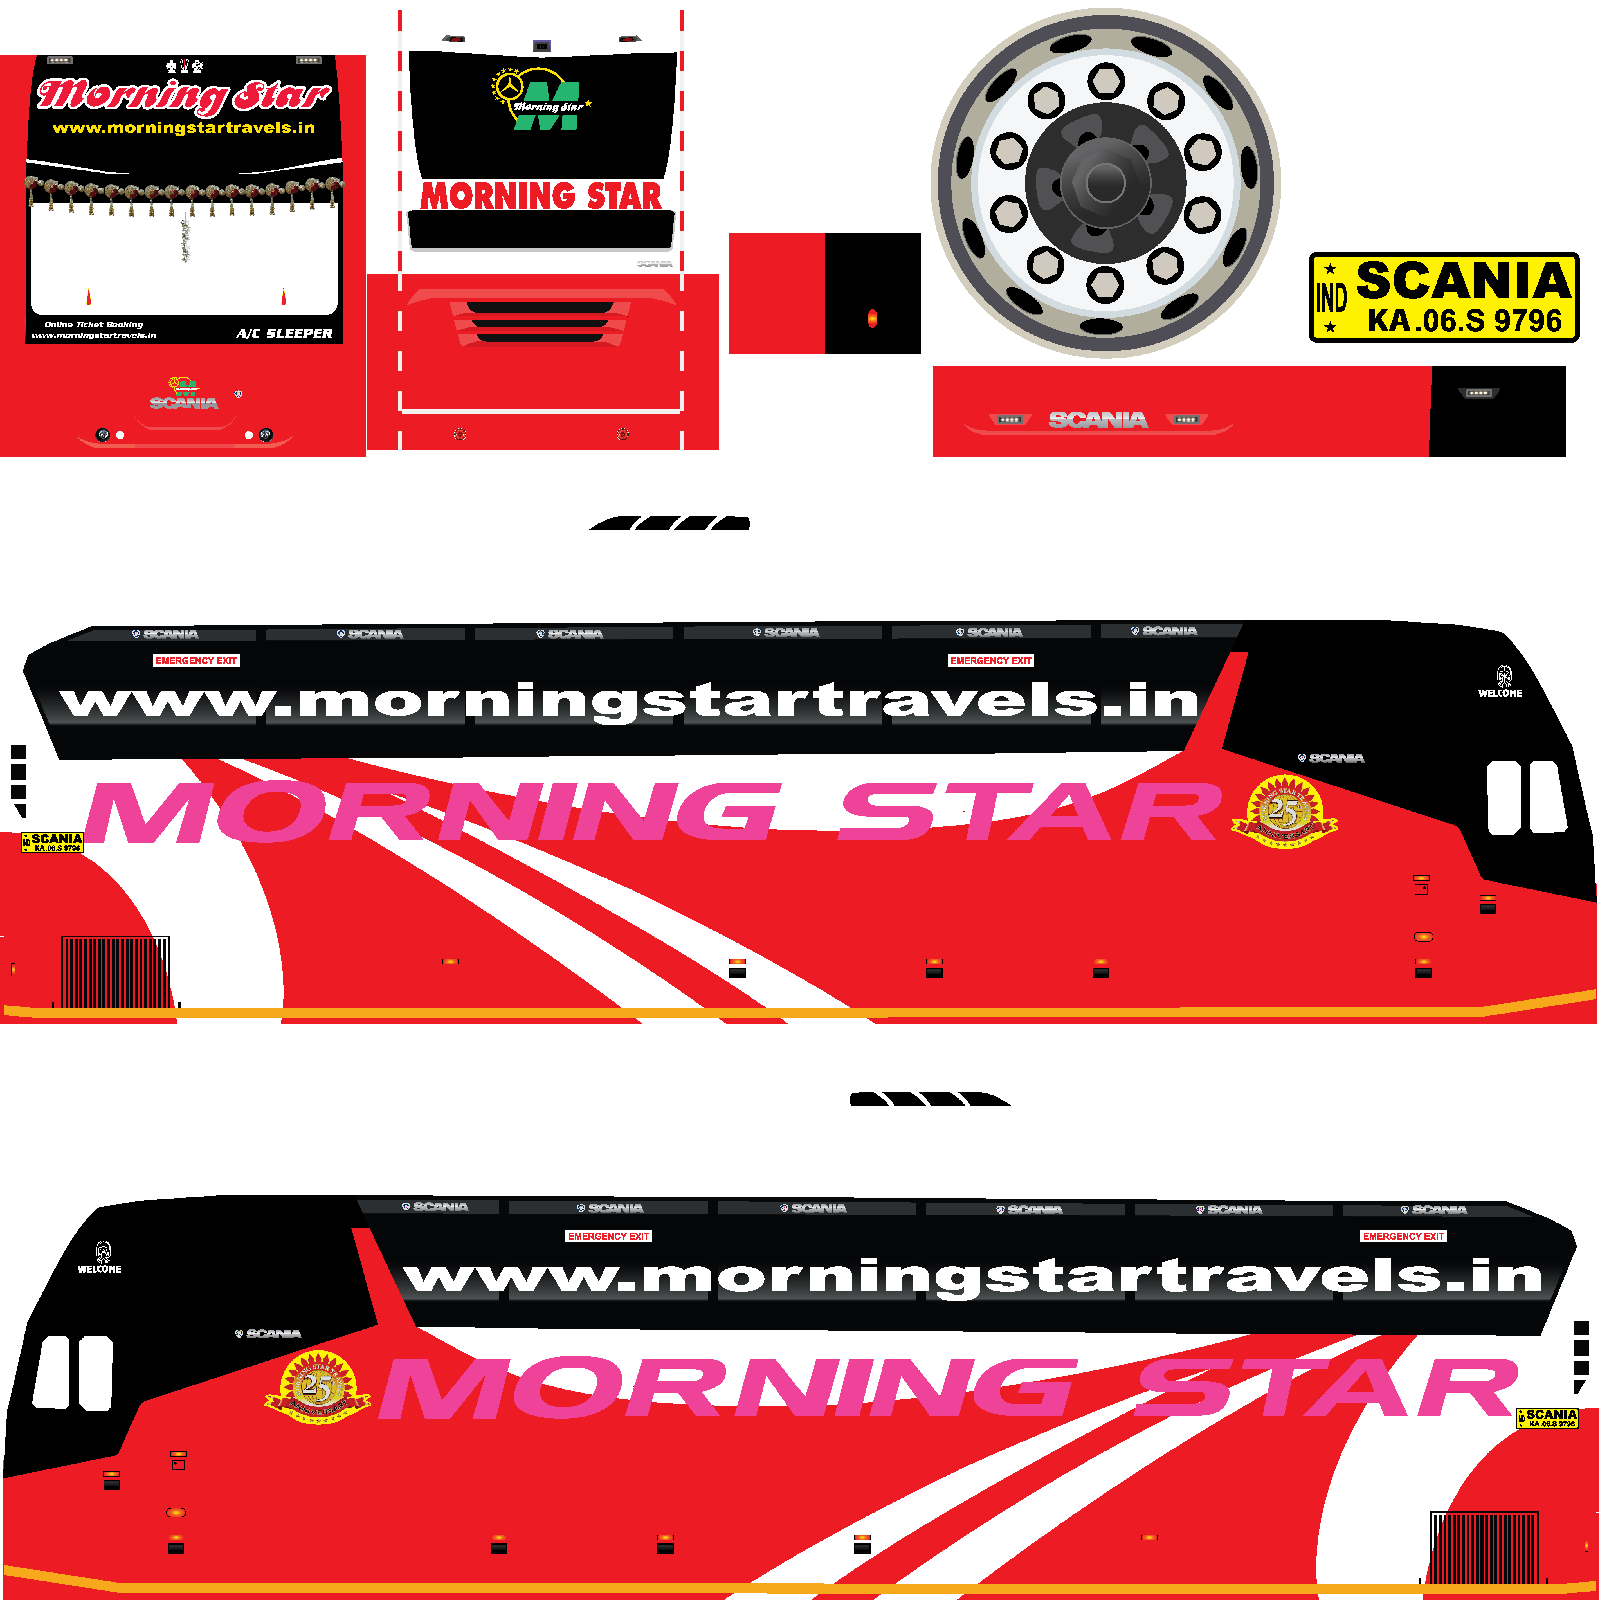 Bussid Morning Star Scania Livery Bus Simulator Indonesia Livery Download All Indian Bus Live In 2021 Morning Star New Bus Bus Living